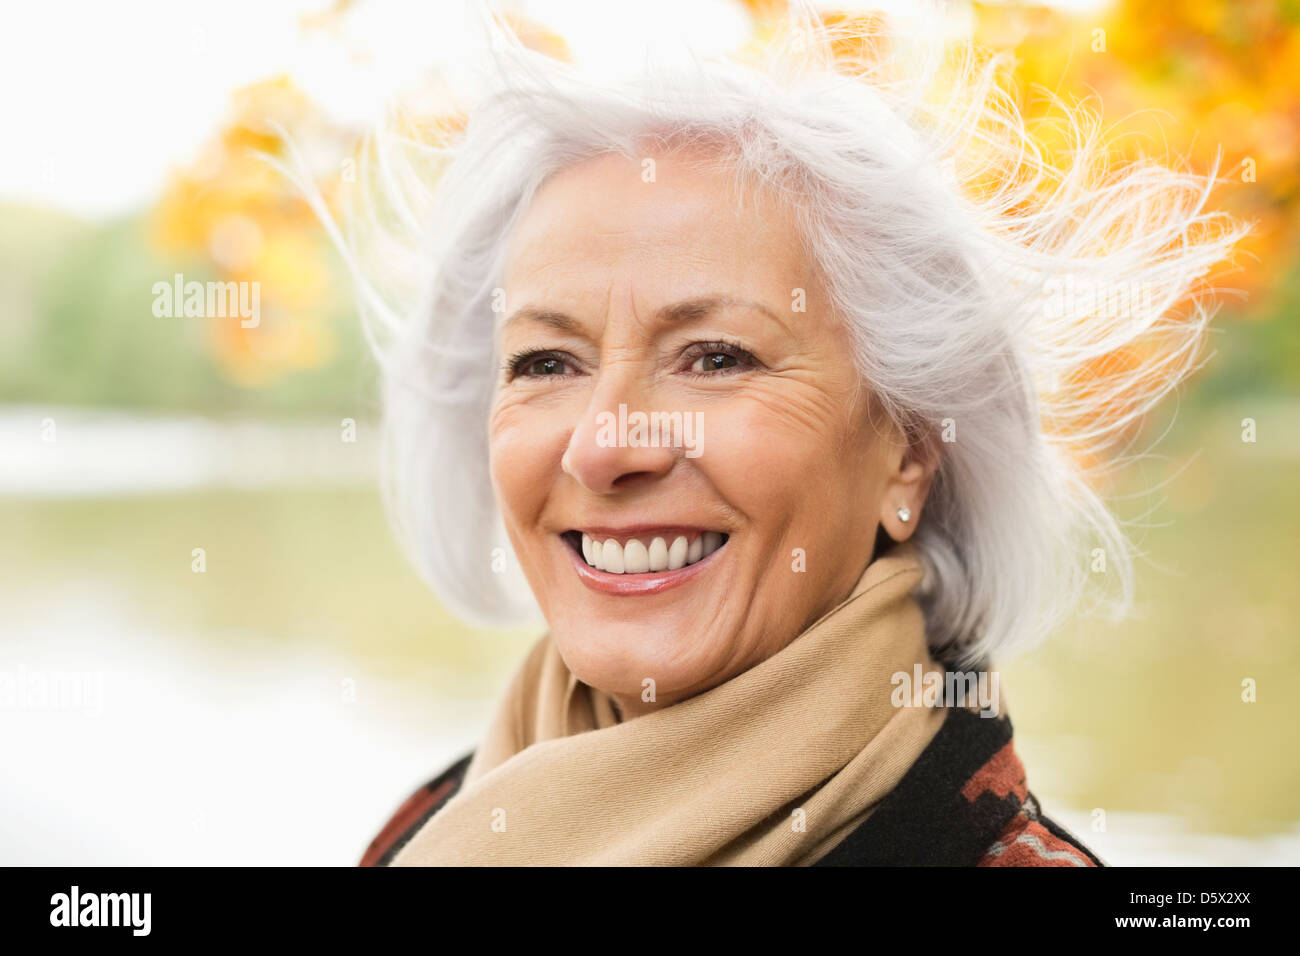 Smiling older woman standing in park - Stock Image